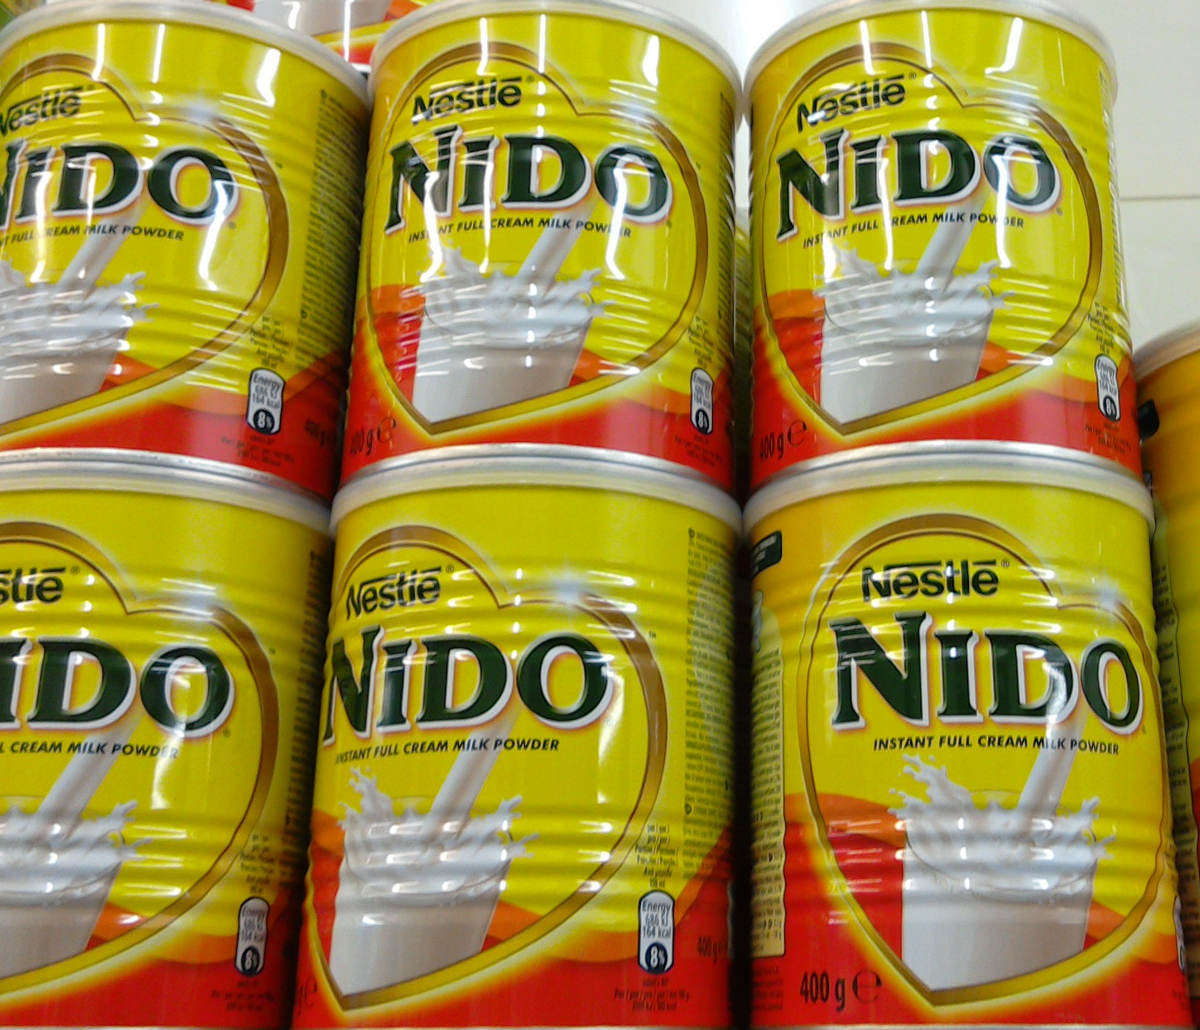 Nido Price, Nido Arabic, Nido Red Cap, Nido Milk, Nido Supplier, Nido Export, Nido Import, Nido Disc